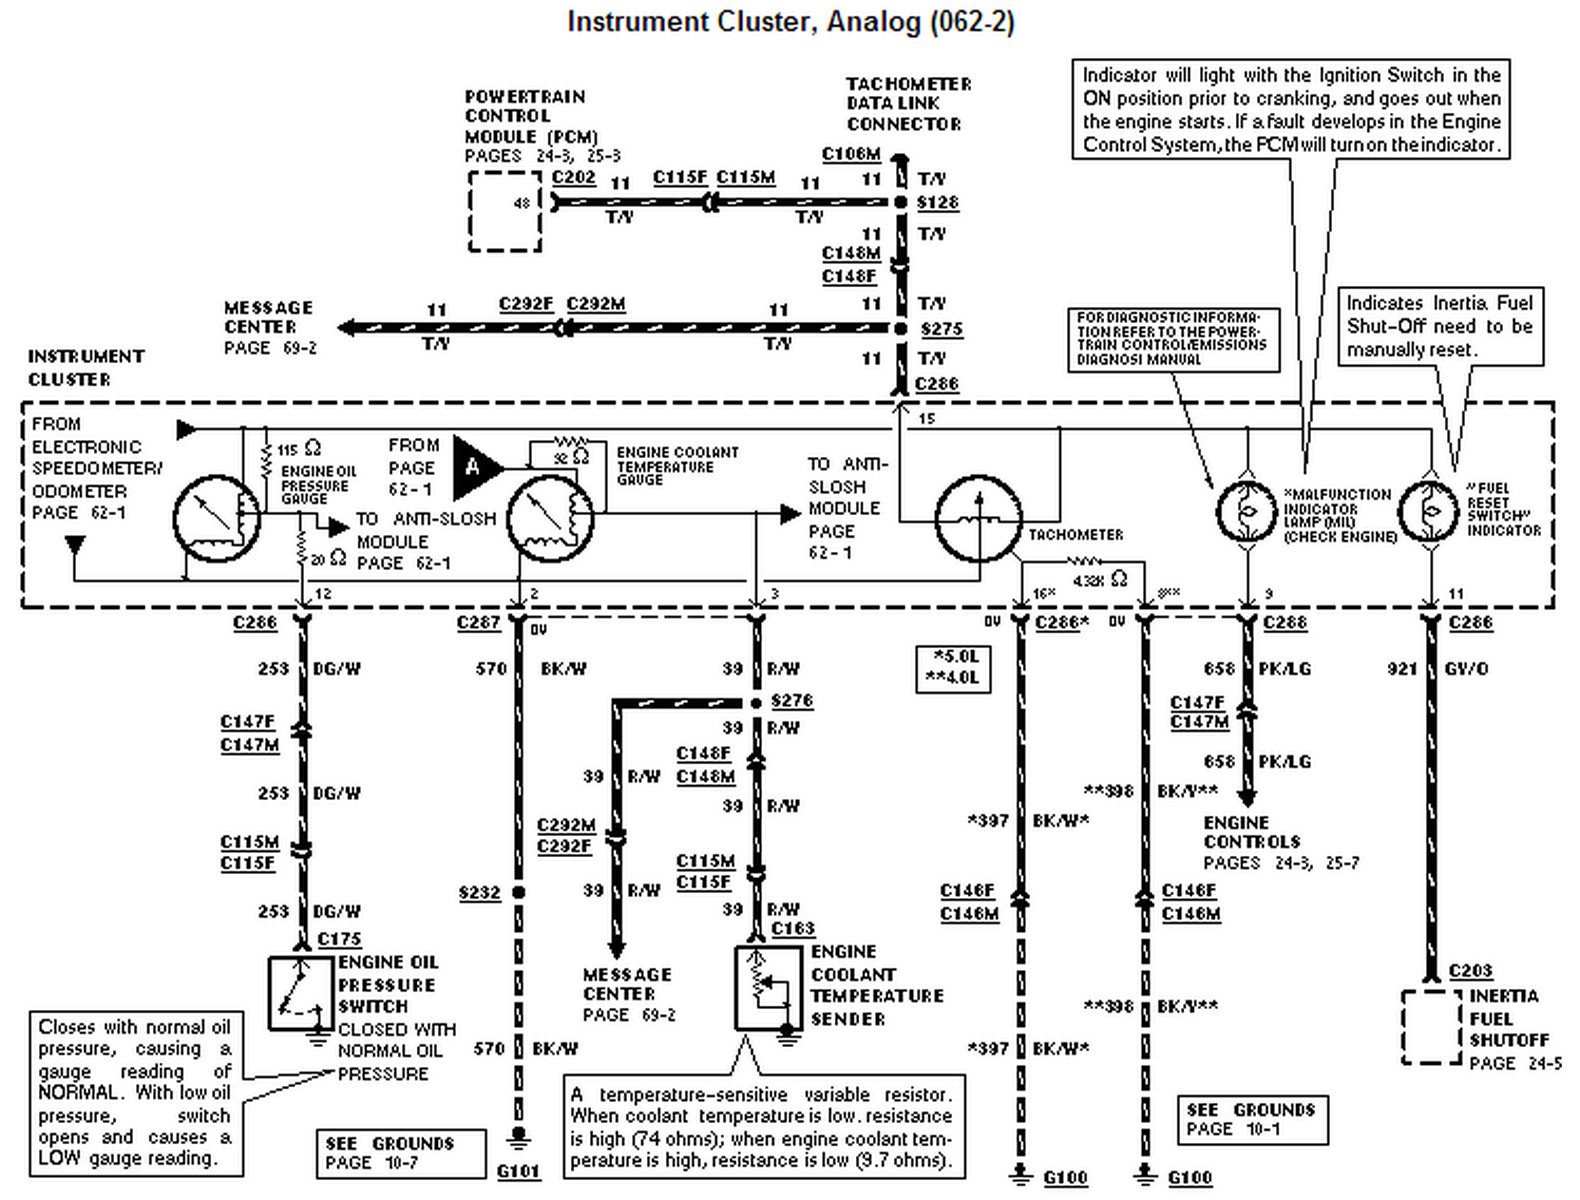 07 F350 Fuse Box Diagram Wiring Library Ford F 350 Explorer Questions 2013 Base Electrical 99 Panel 2007 Diesel